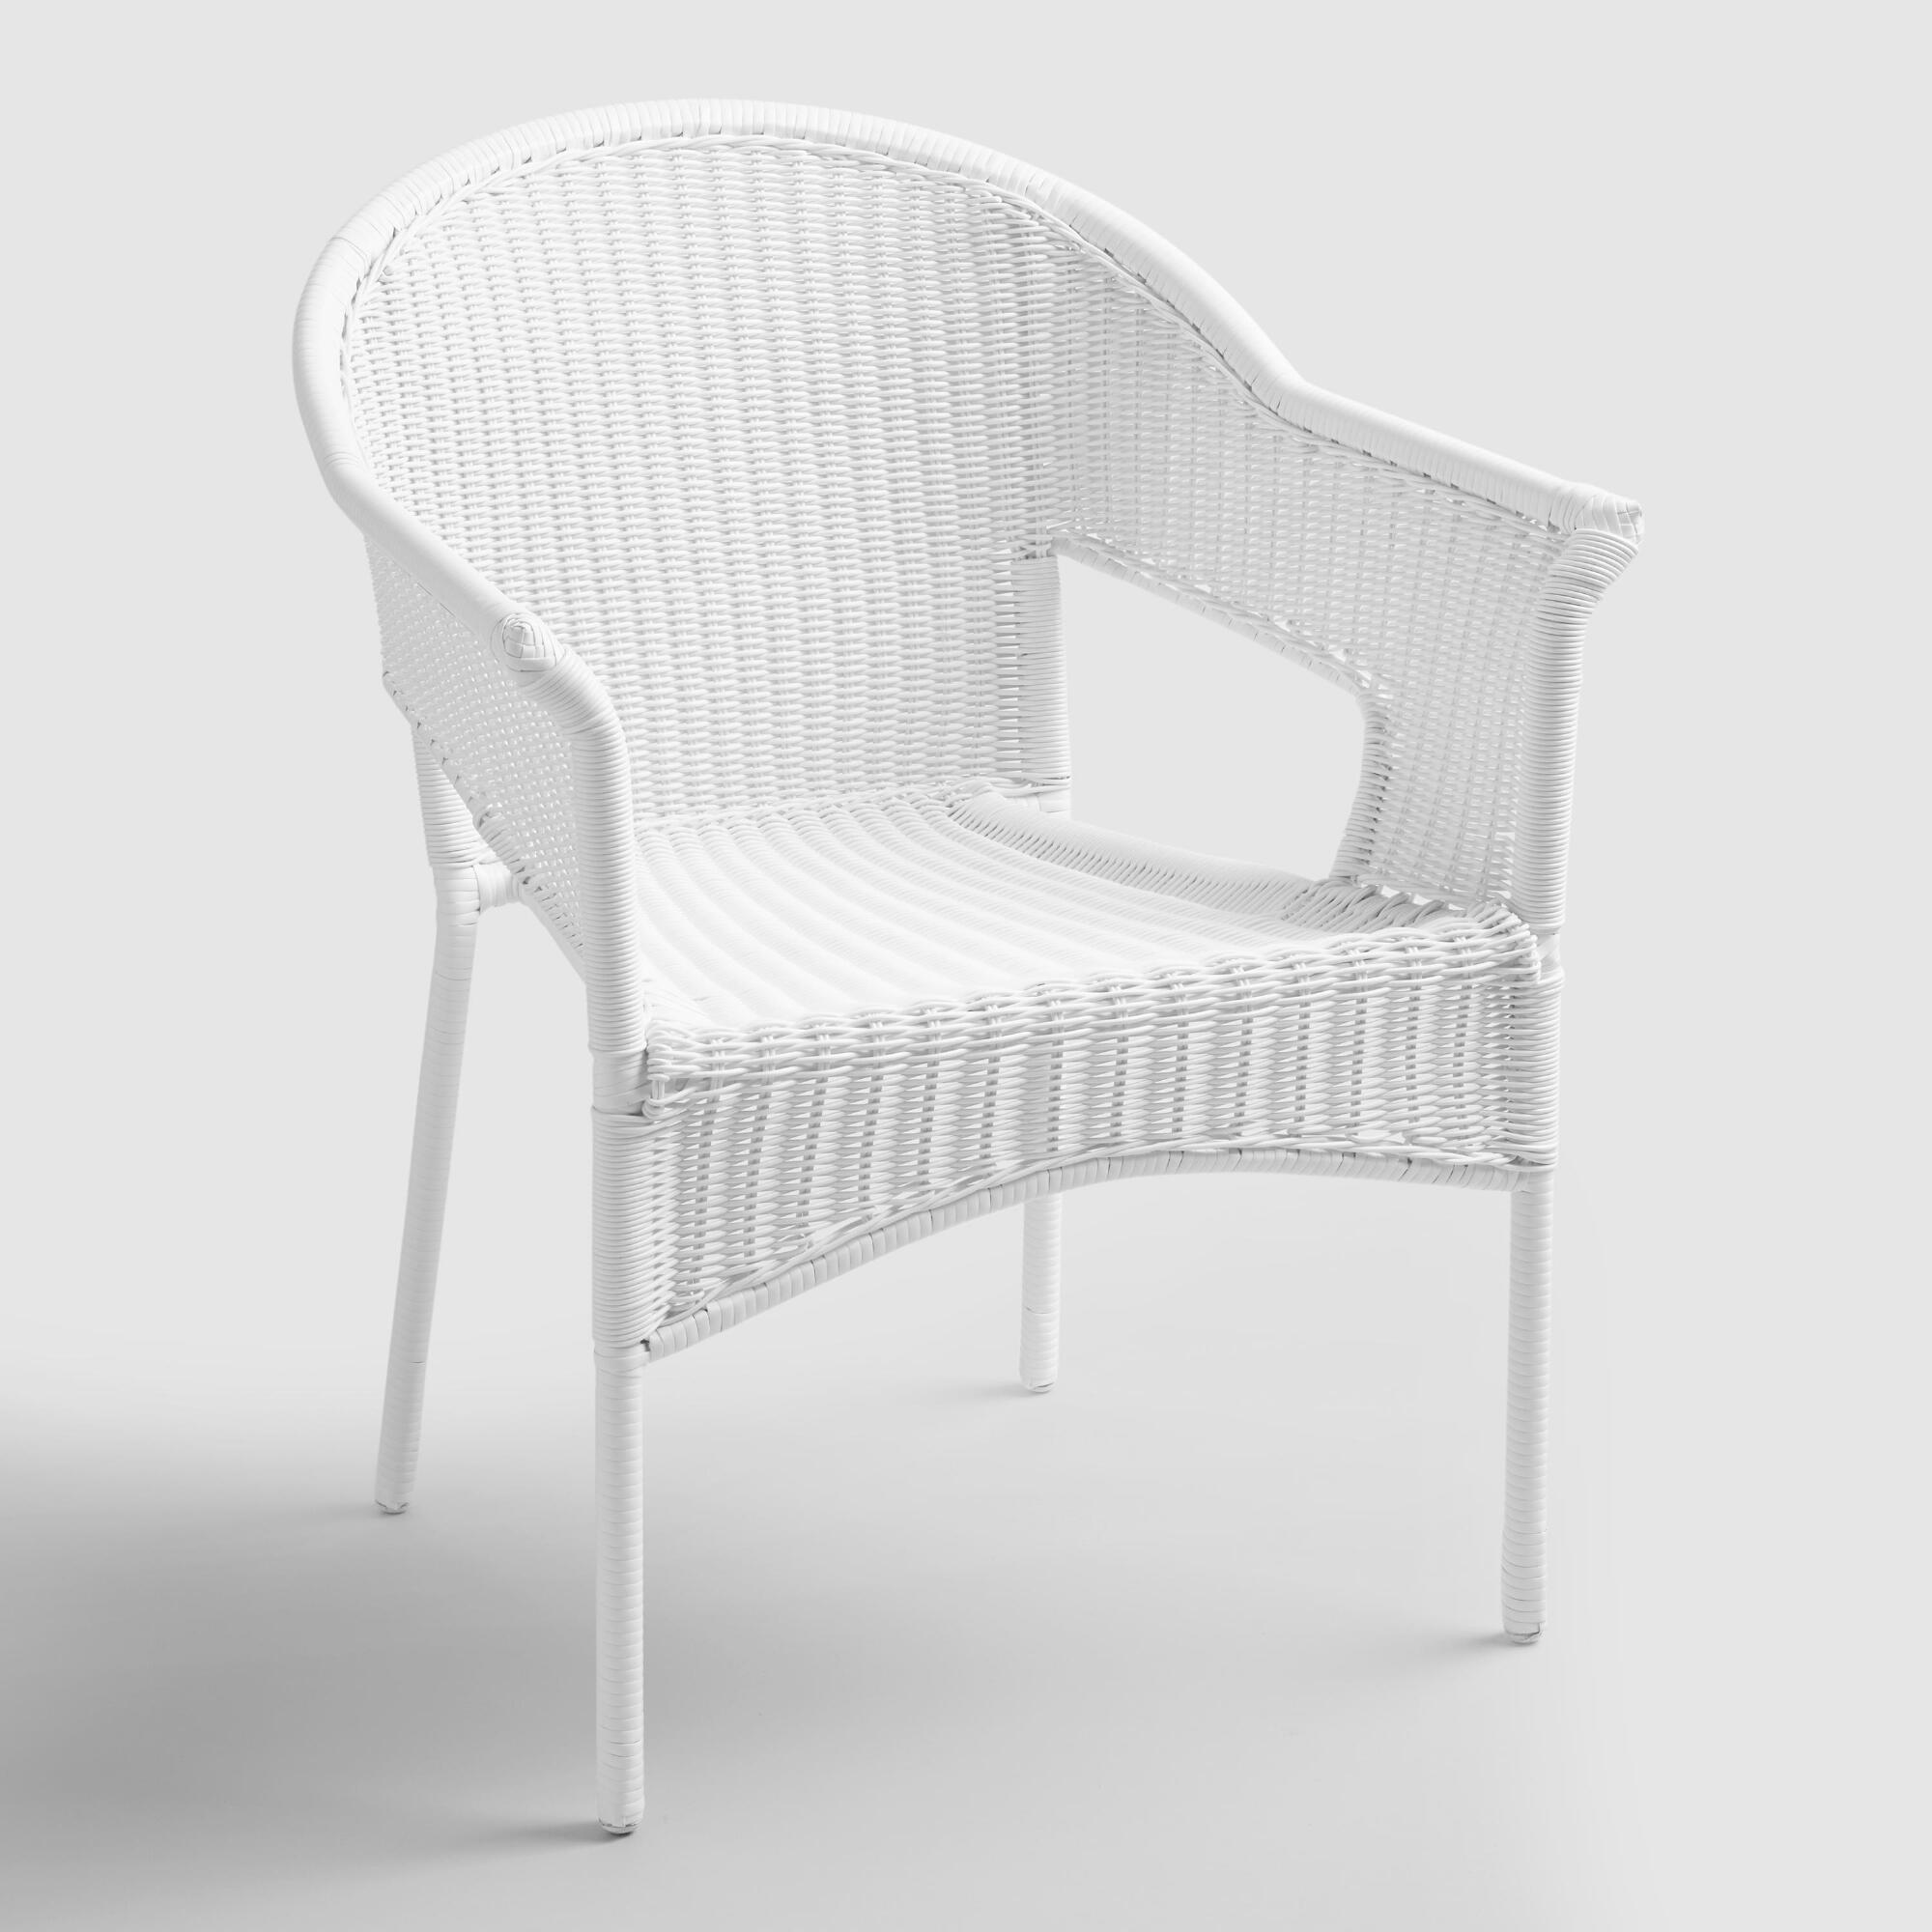 Cheap Wicker Chair: White All Weather Wicker Stacking Tub Chairs Set Of 2